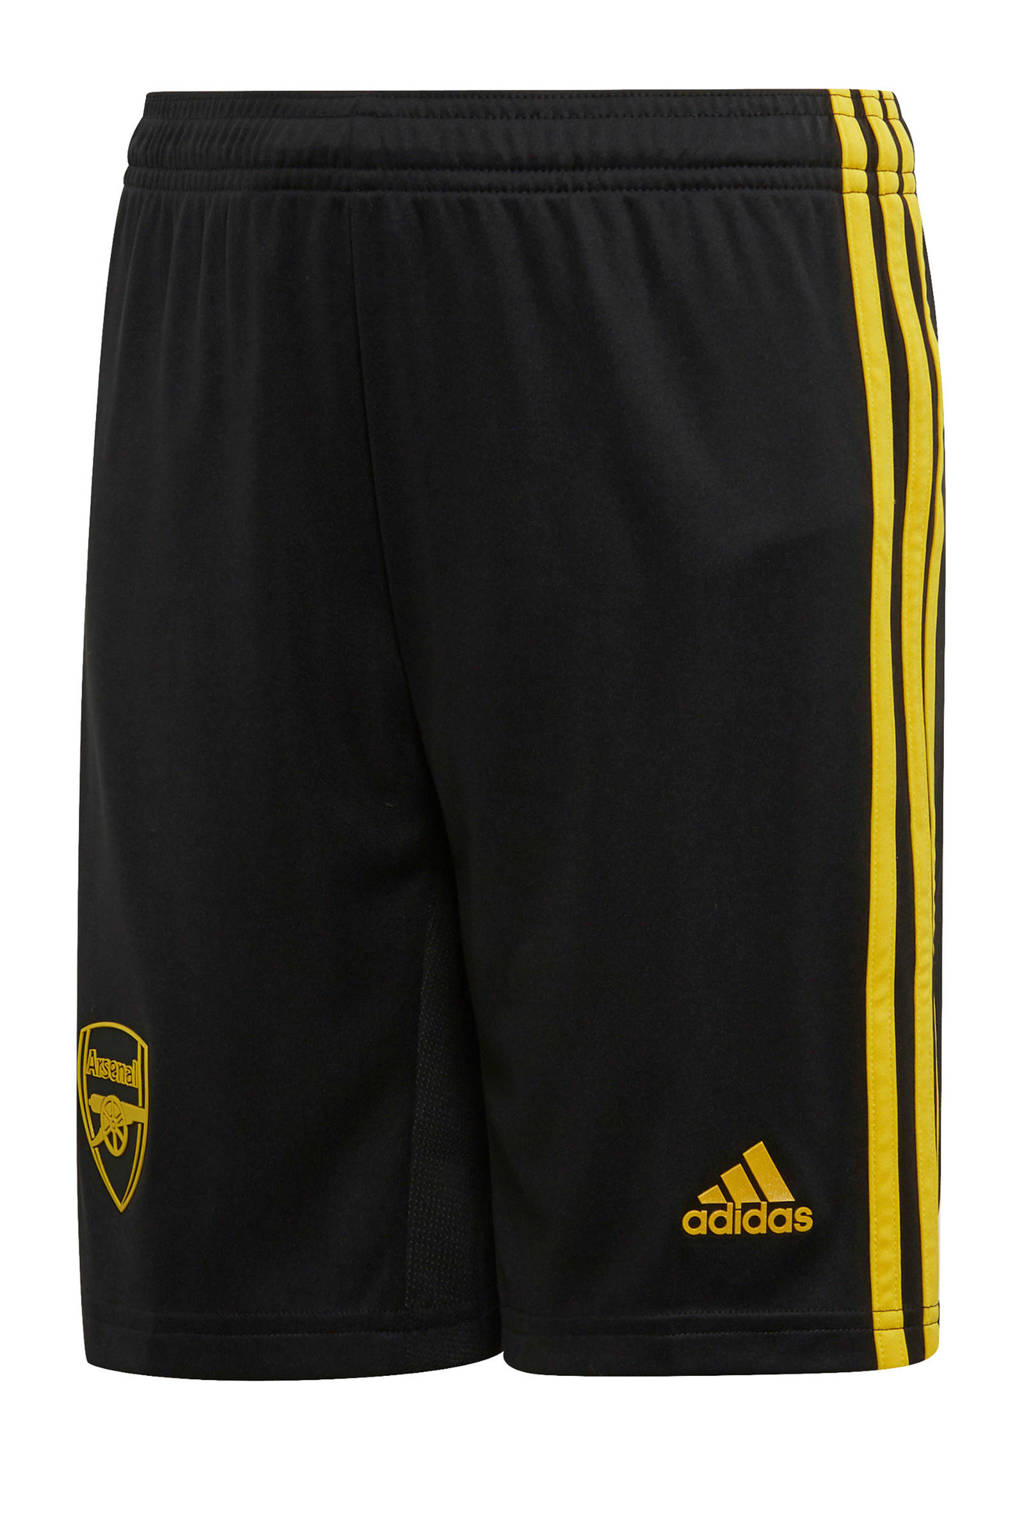 adidas performance Junior Arsenal FC voetbalshort, Zwart